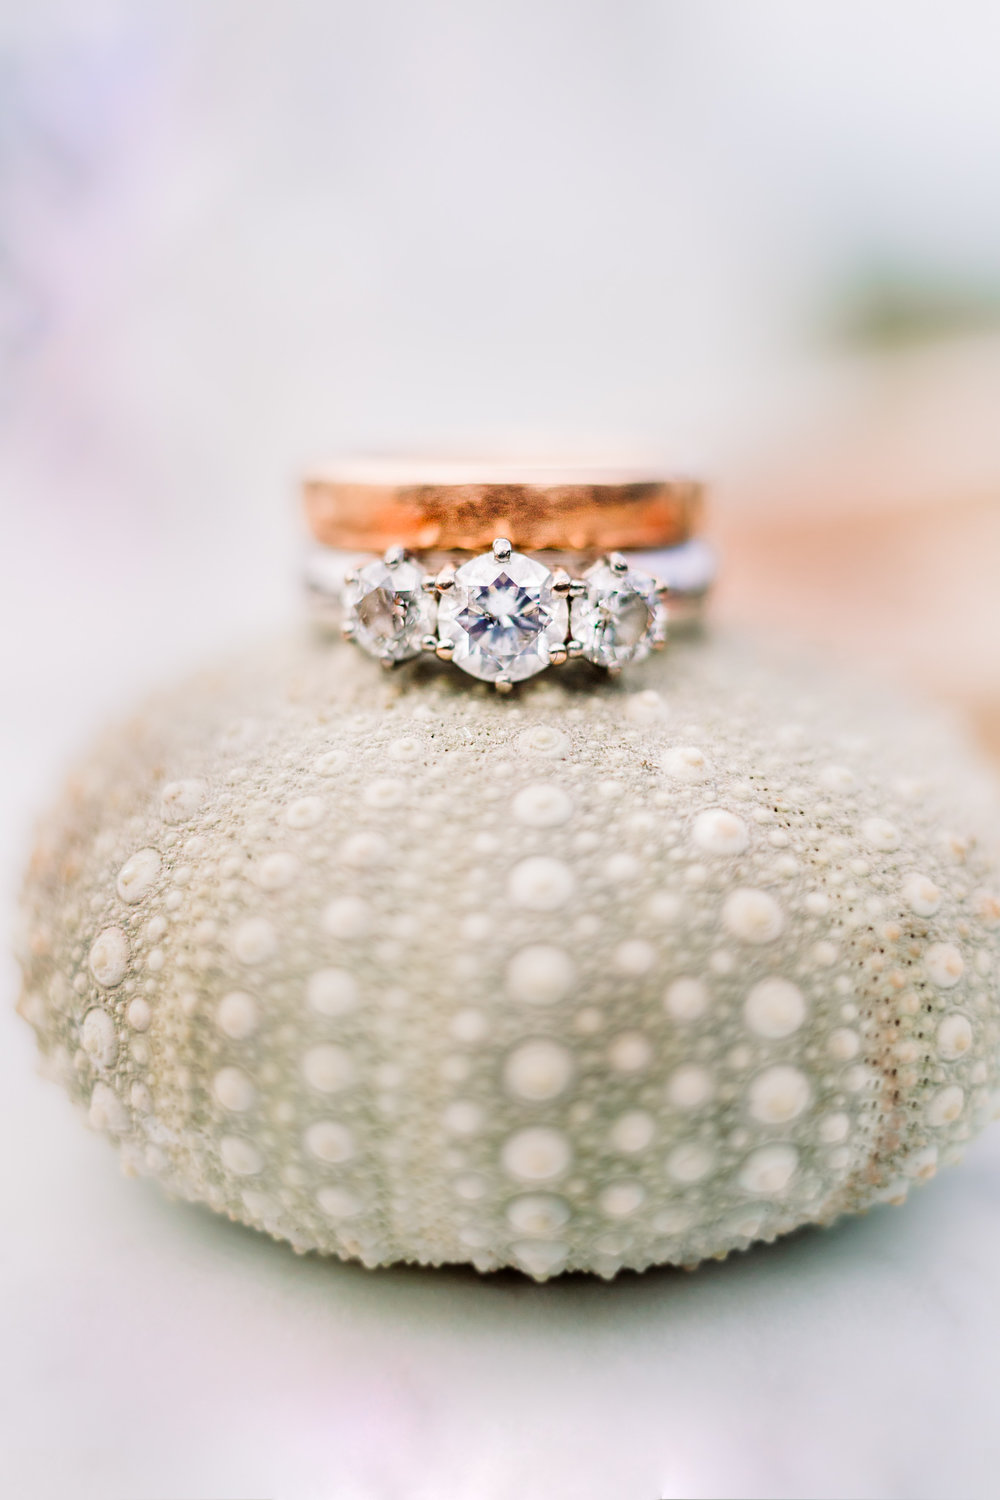 Diamond trio wedding ring and rose gold band with sea urchin at a destination wedding at the Port Molyneux School